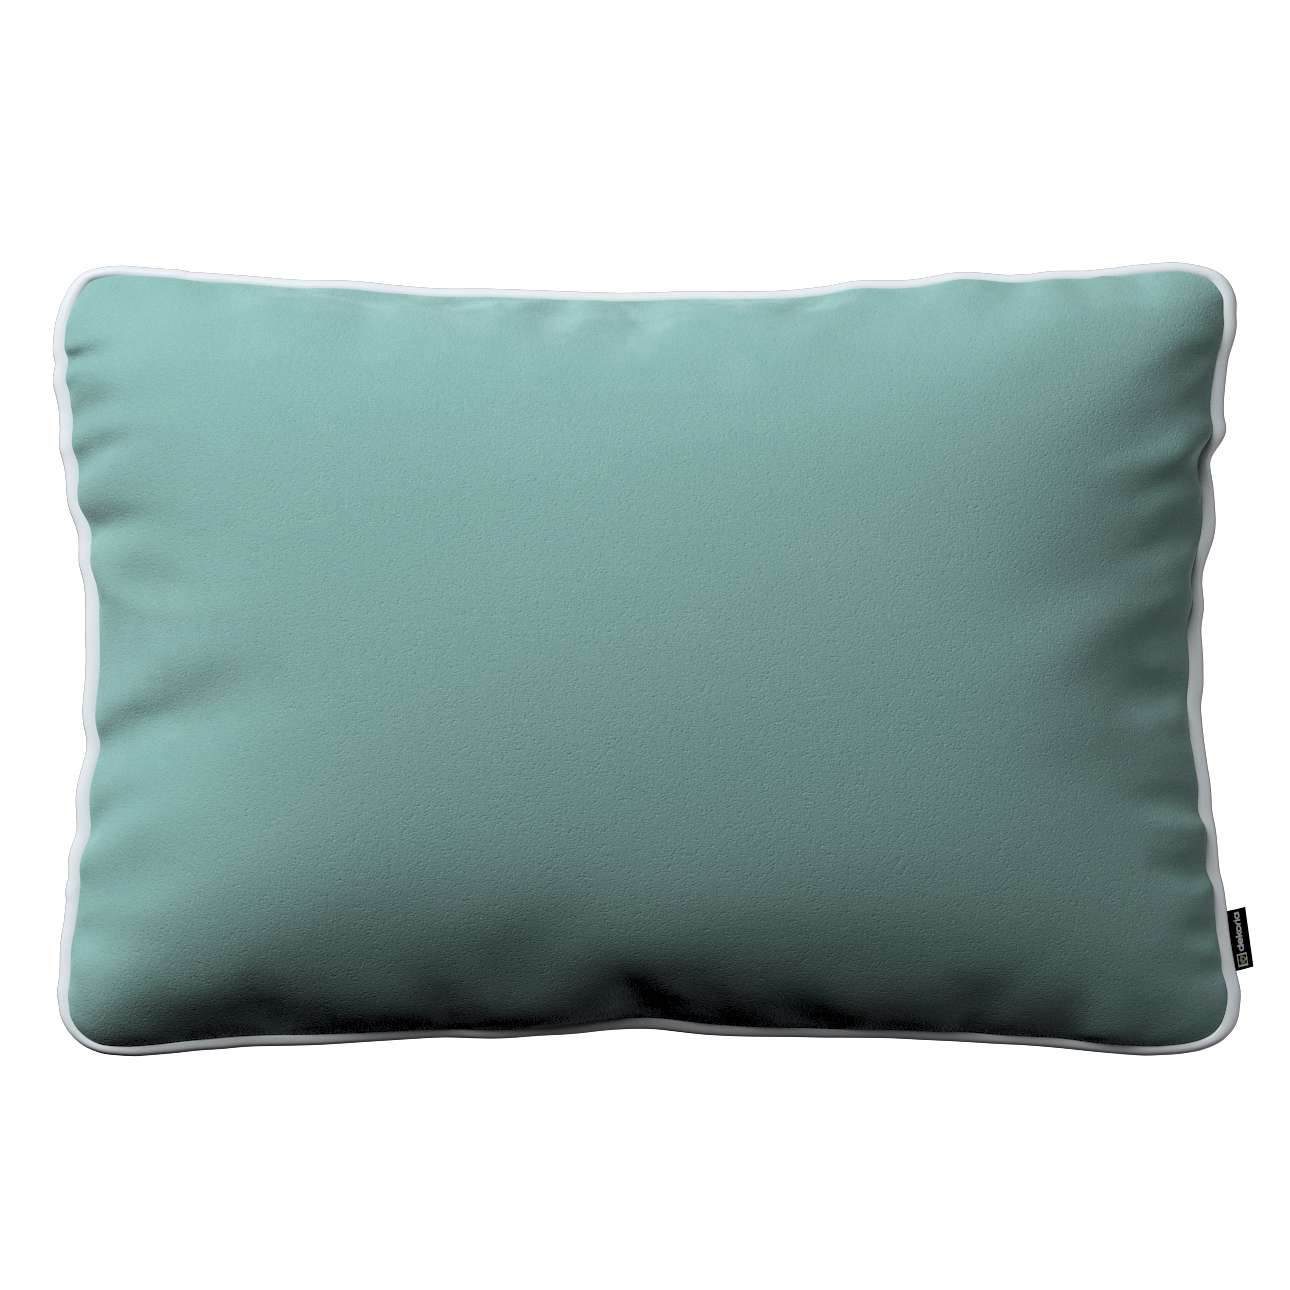 Laura rectangular velvet cushion cover with piping 60×40cm in collection Velvet, fabric: 704-18